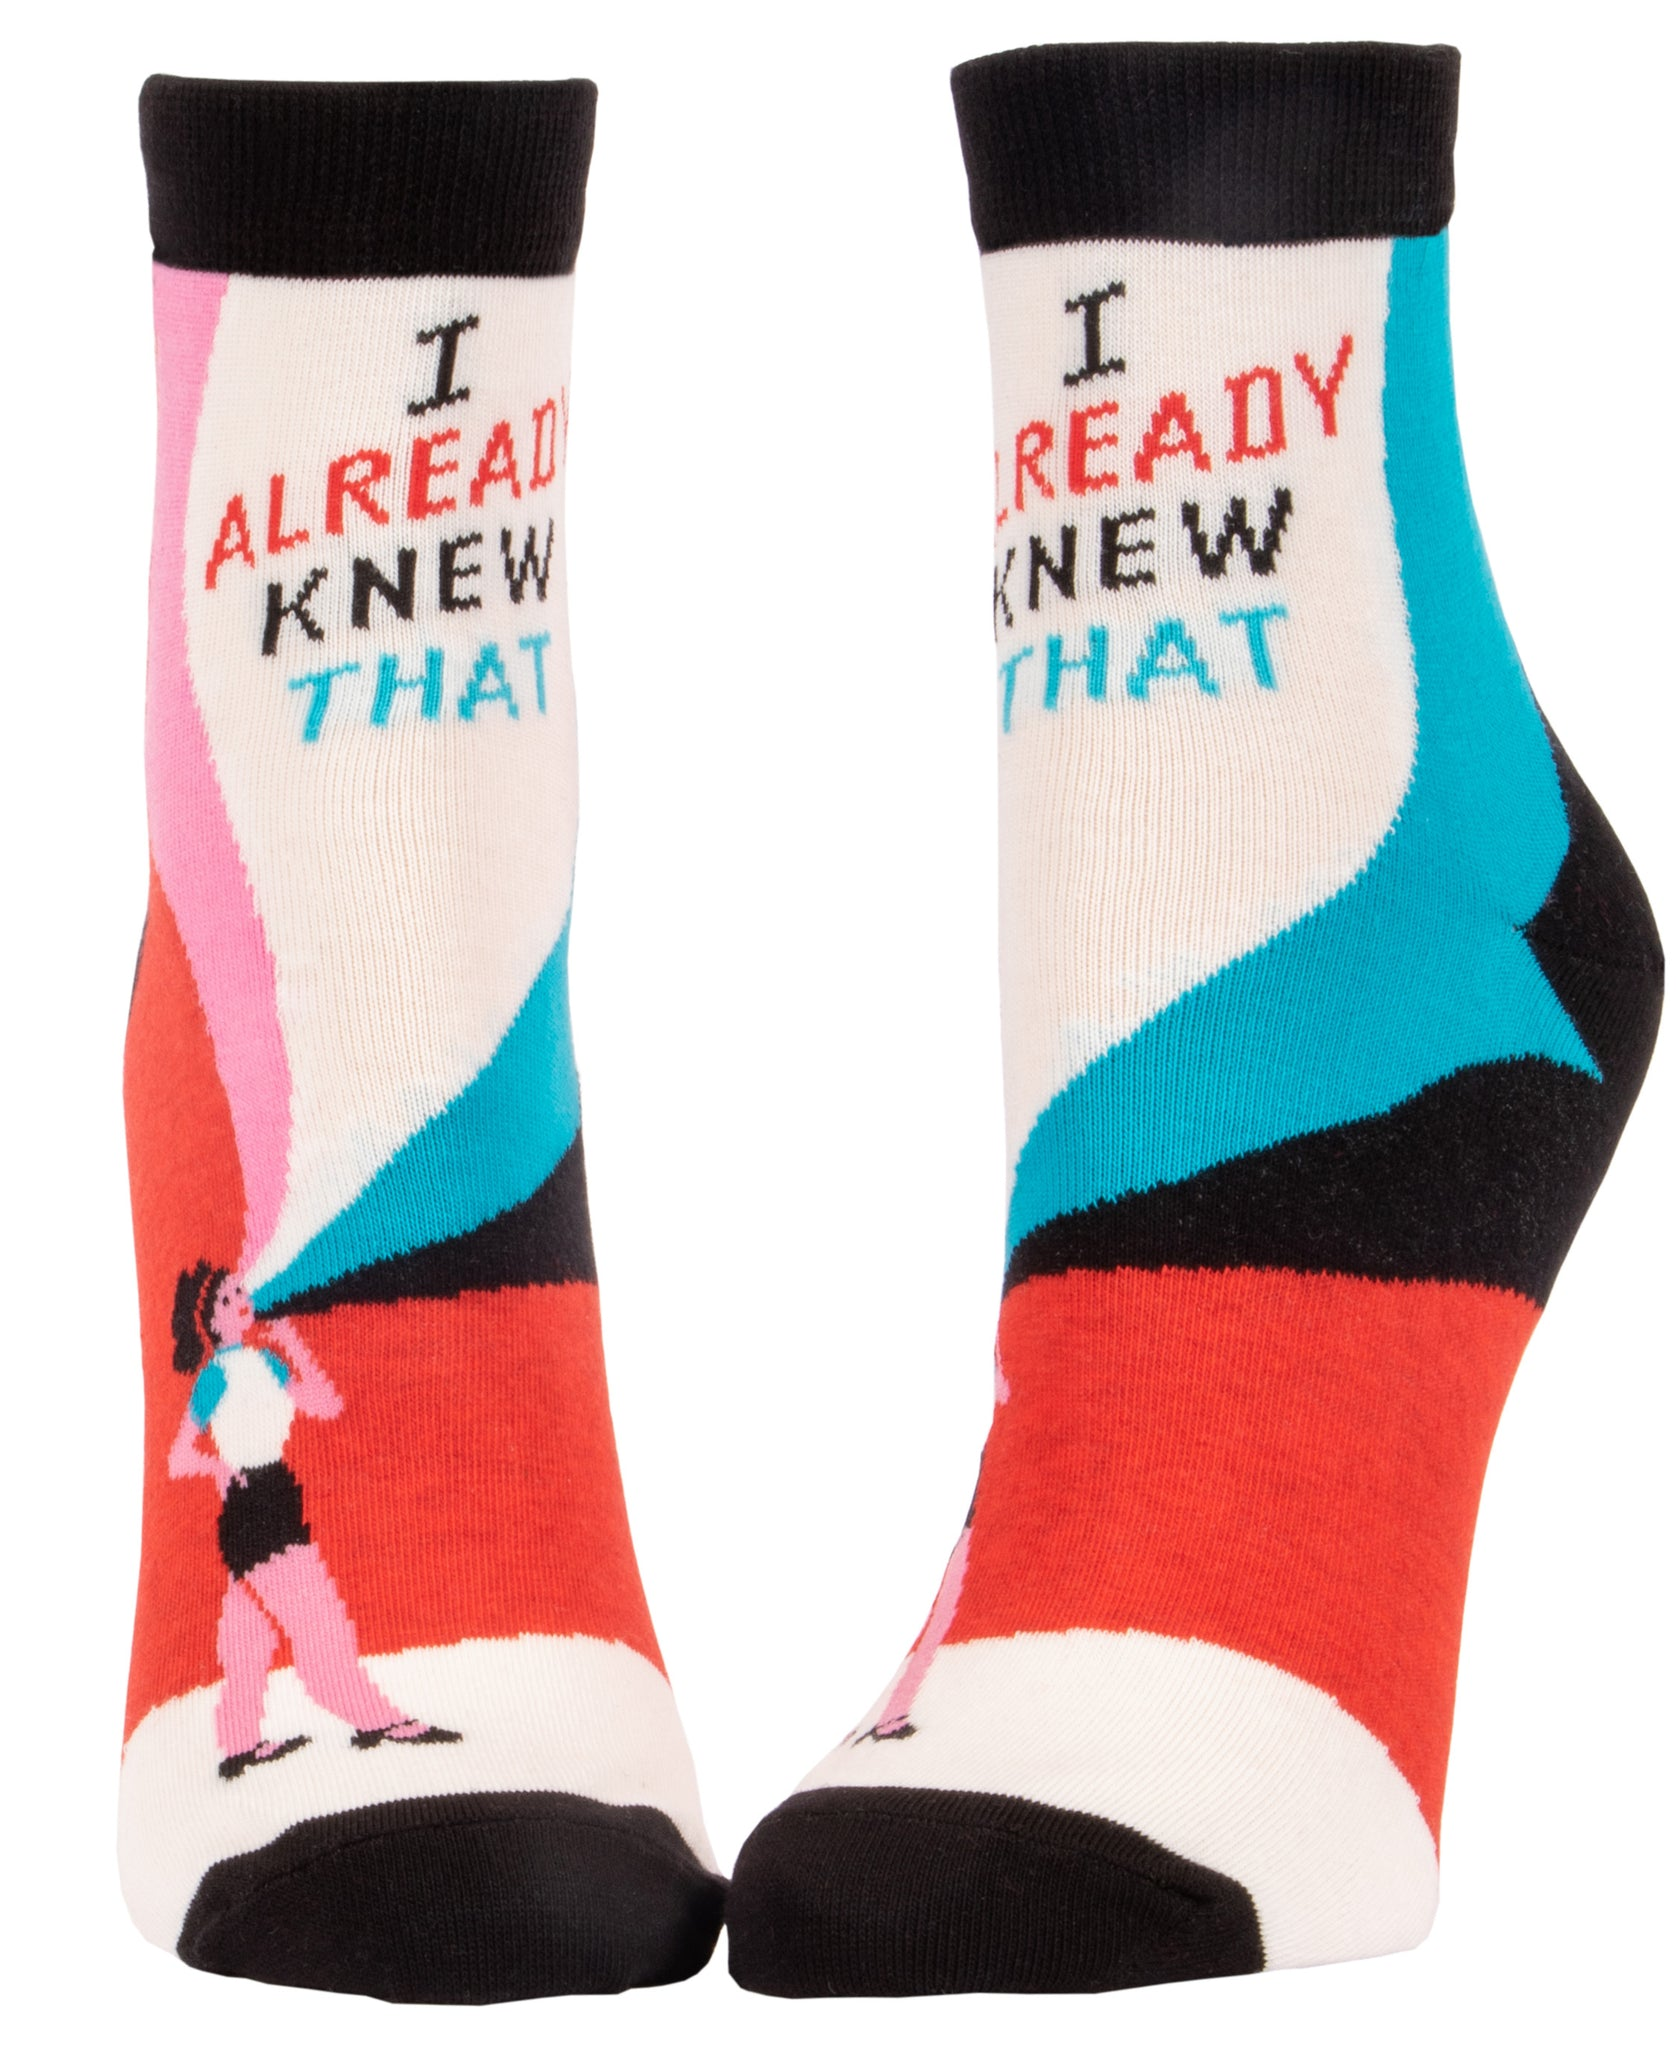 Women's Socks : I already knew that.